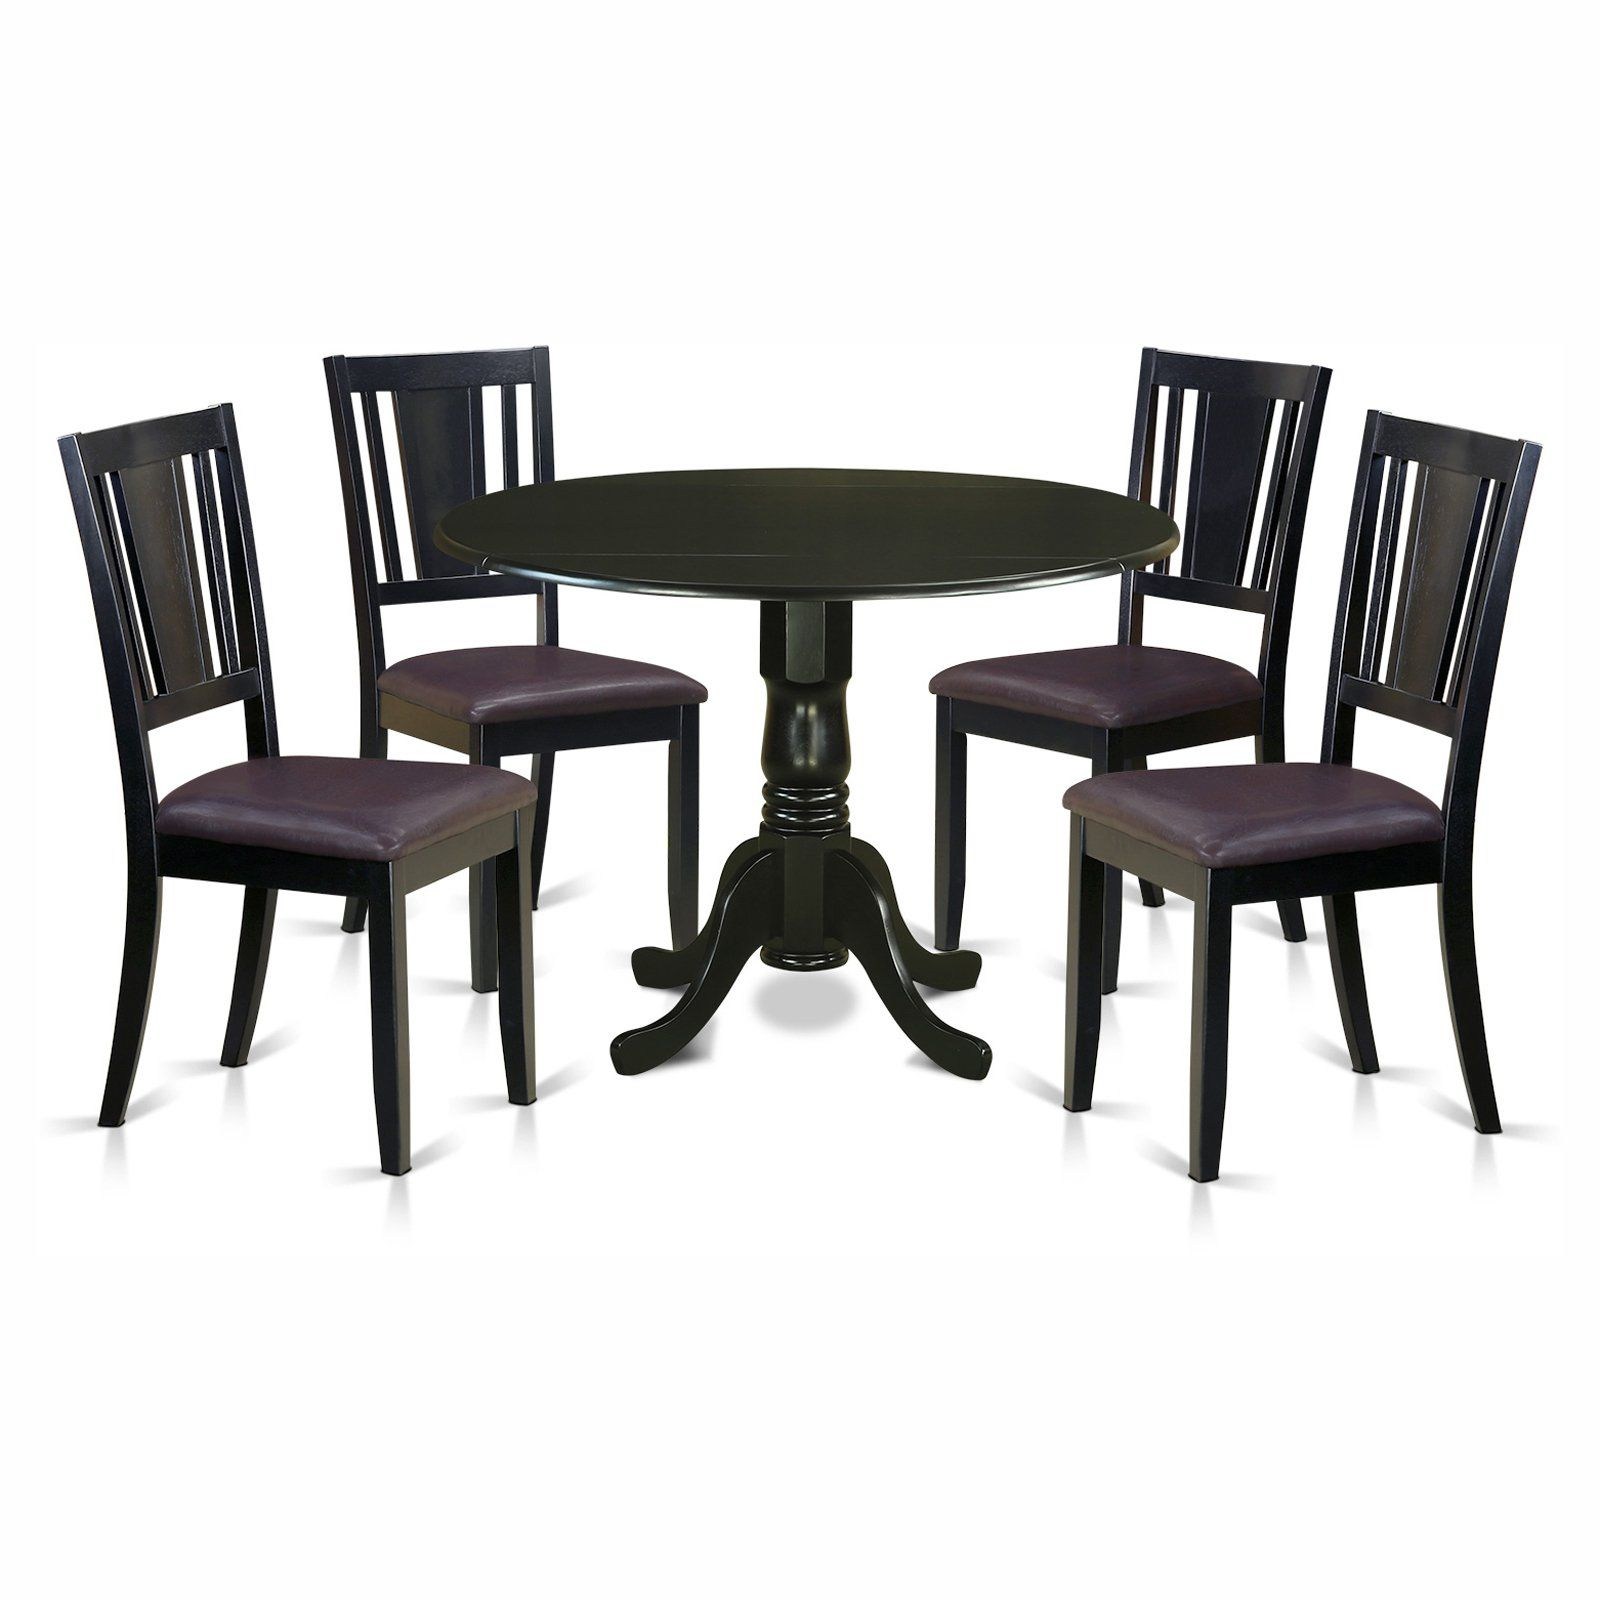 Magnificent East West Furniture Dublin 5 Piece Drop Leaf Dining Table Andrewgaddart Wooden Chair Designs For Living Room Andrewgaddartcom